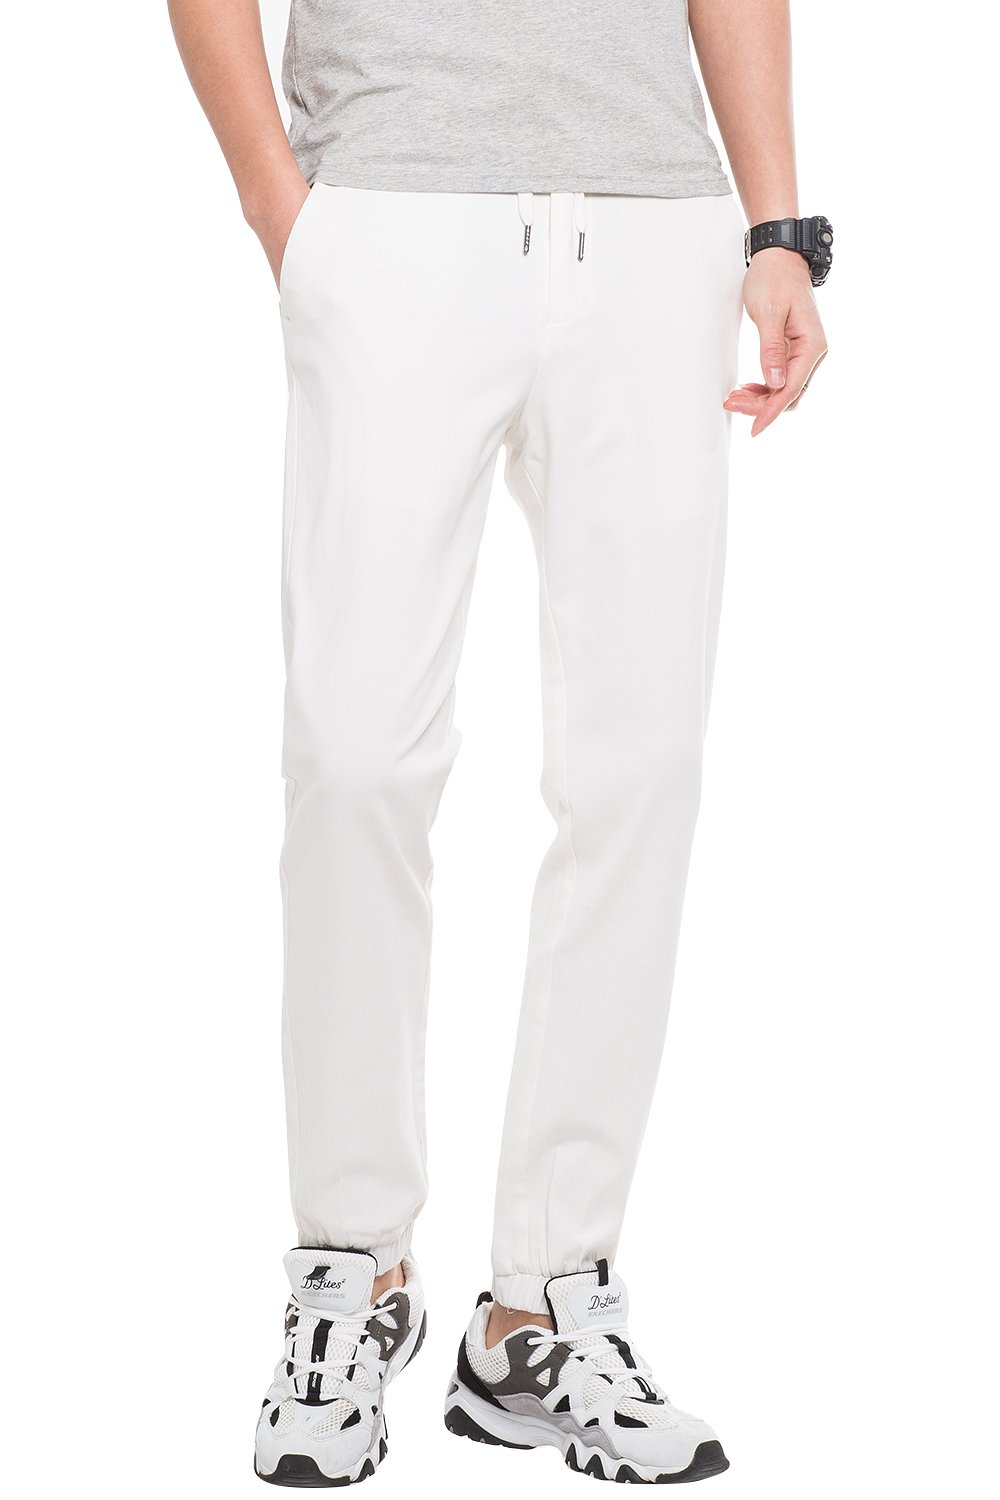 INFLATION Men's Stretchy Casual Jogger Pants  Blend Combed Cotton Formal Elastic Waist Trousers Dress Pants White US SIZE L